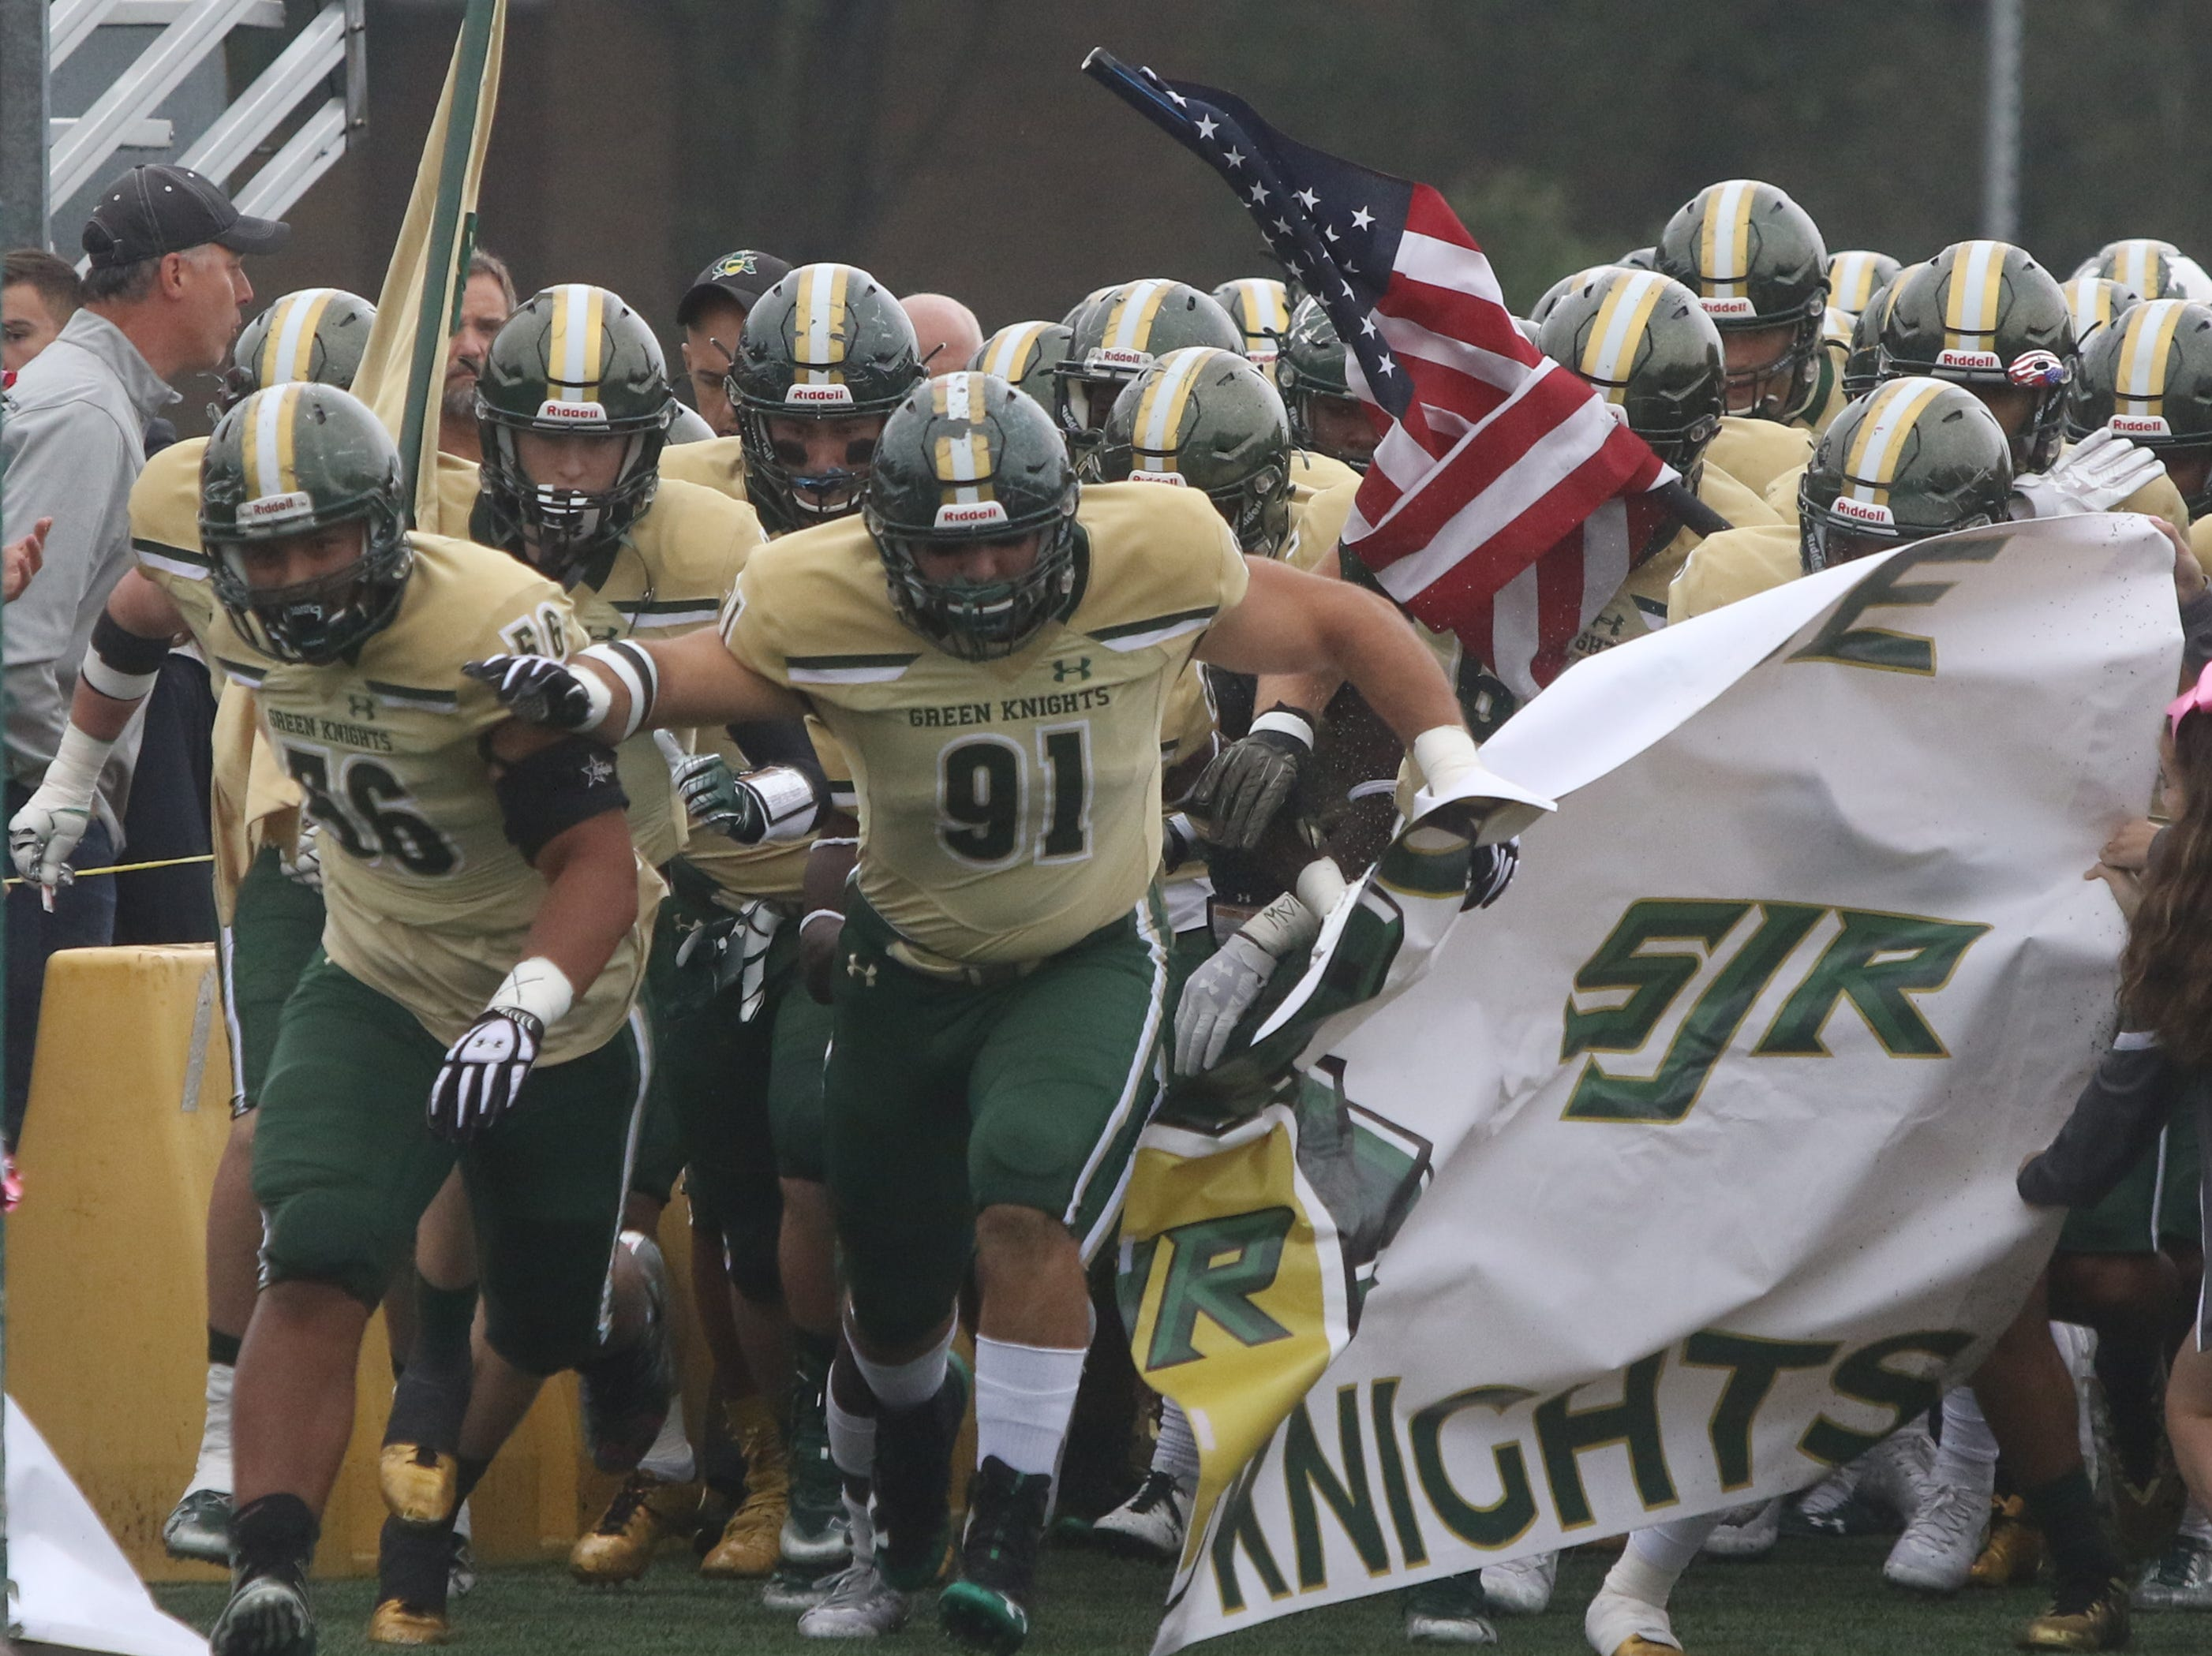 The St. Joseph Green Knights are introduced.